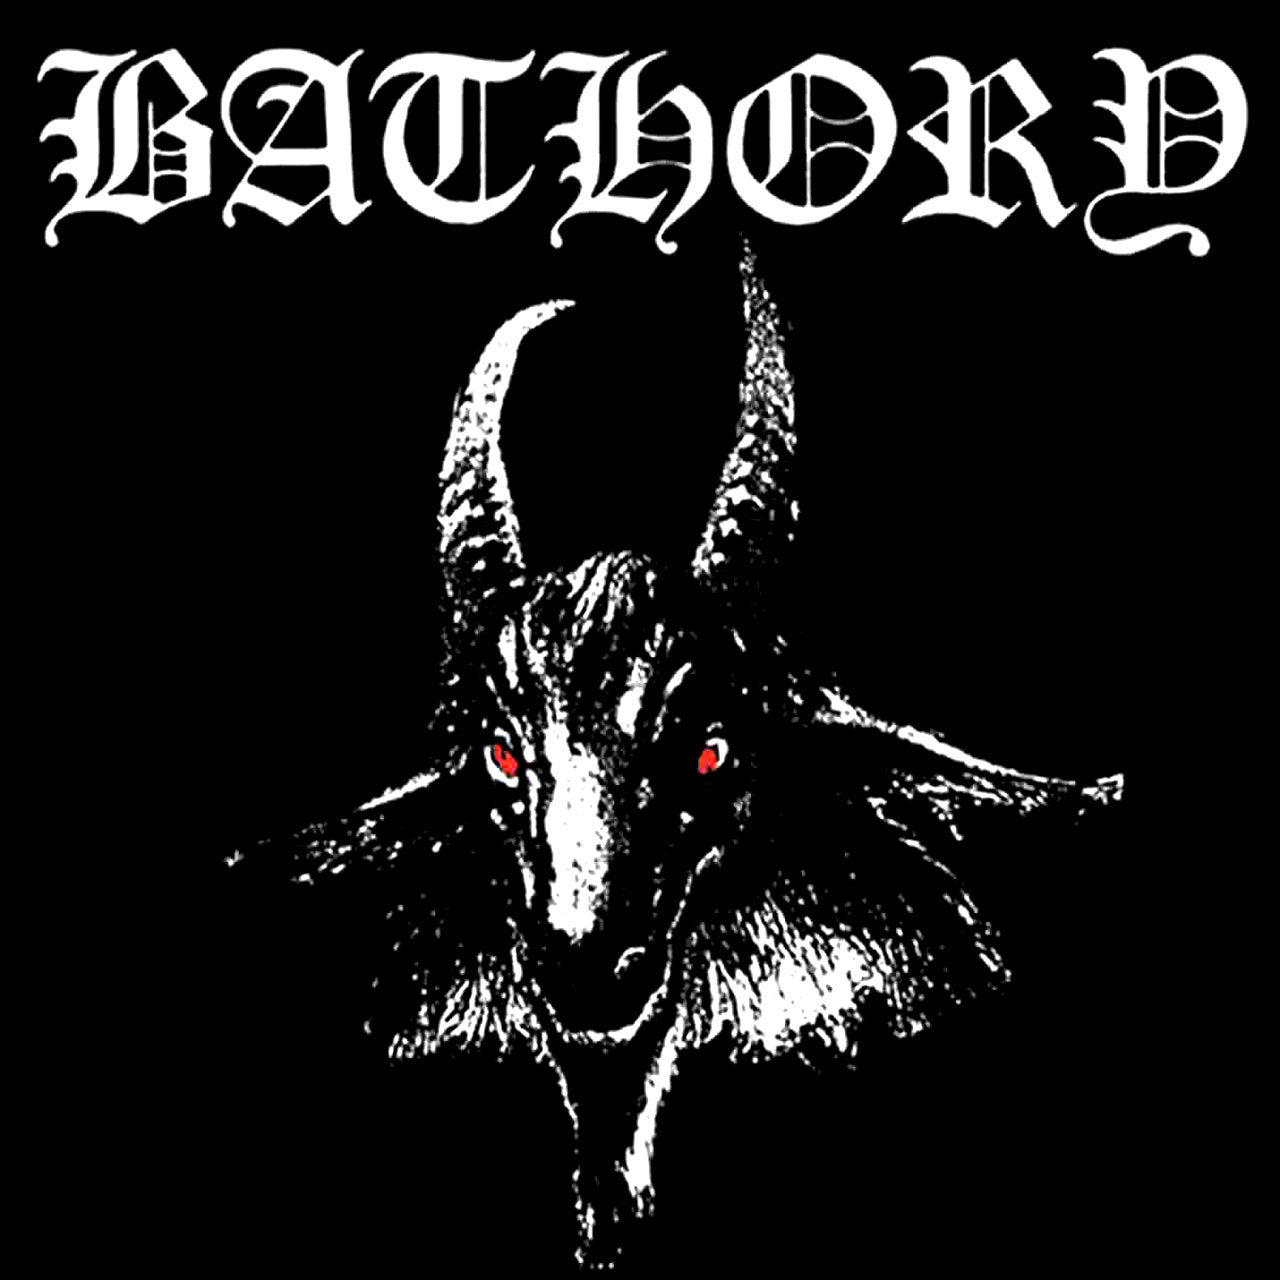 Bathory - Bathory (2010 Reissue) (LP)